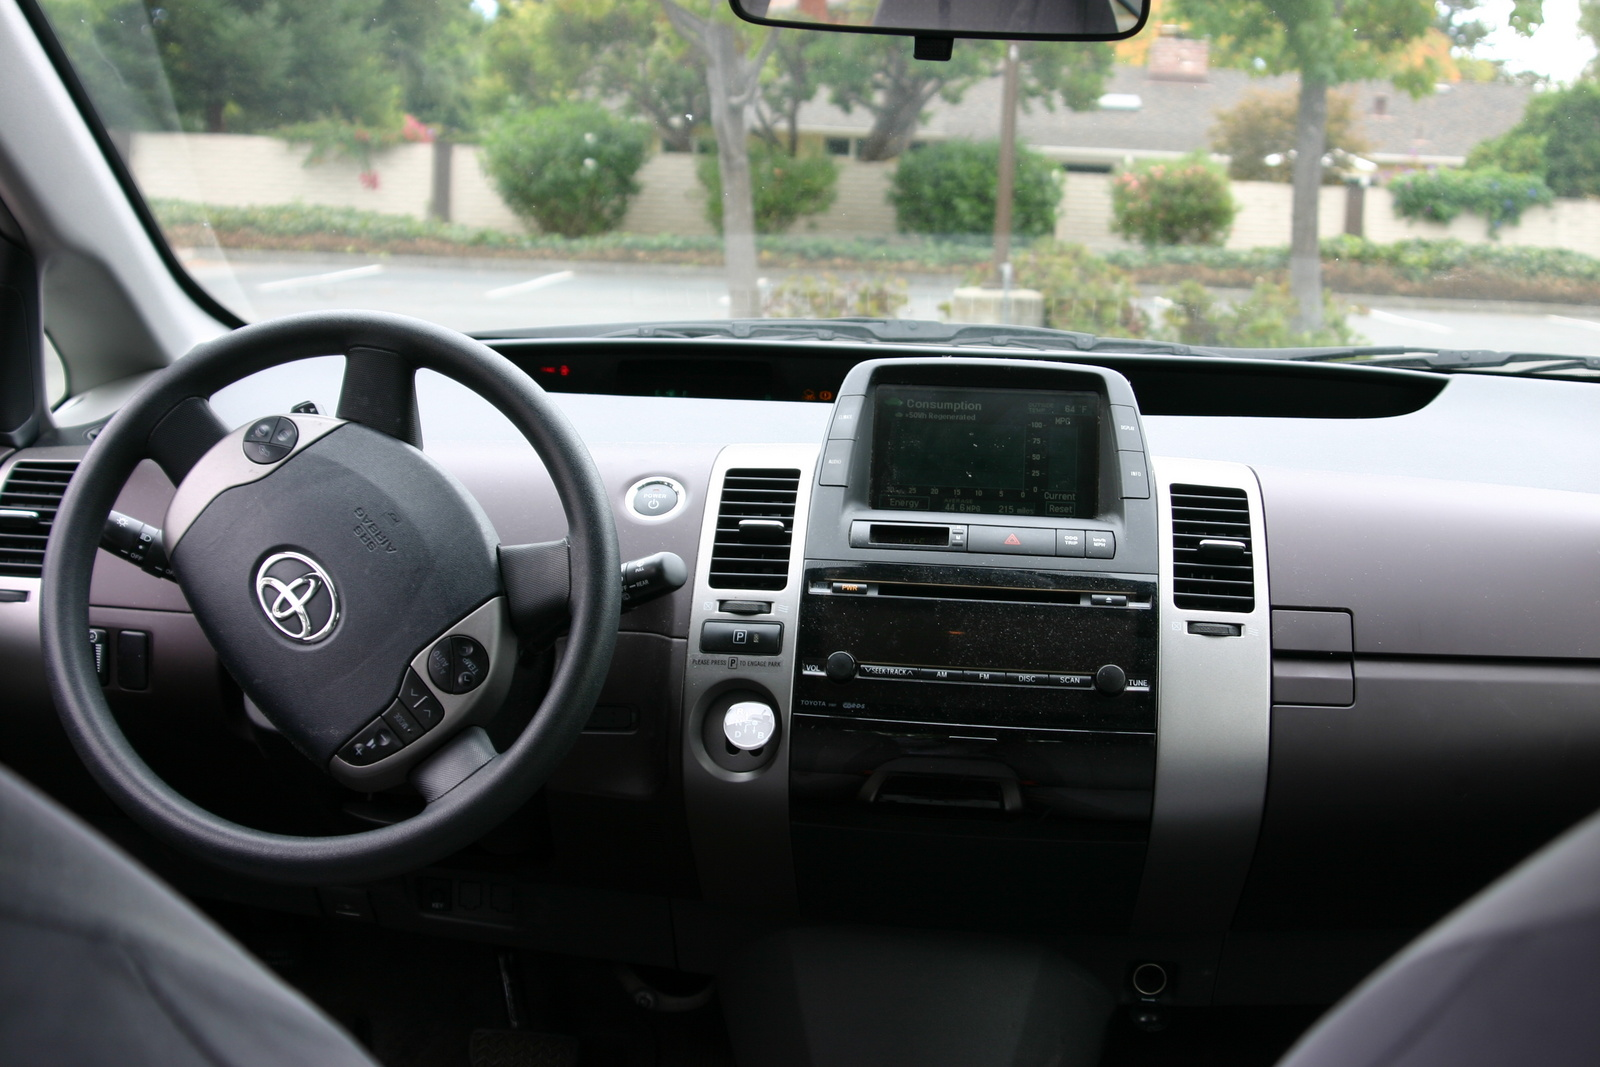 Interior of a 2005 Prius